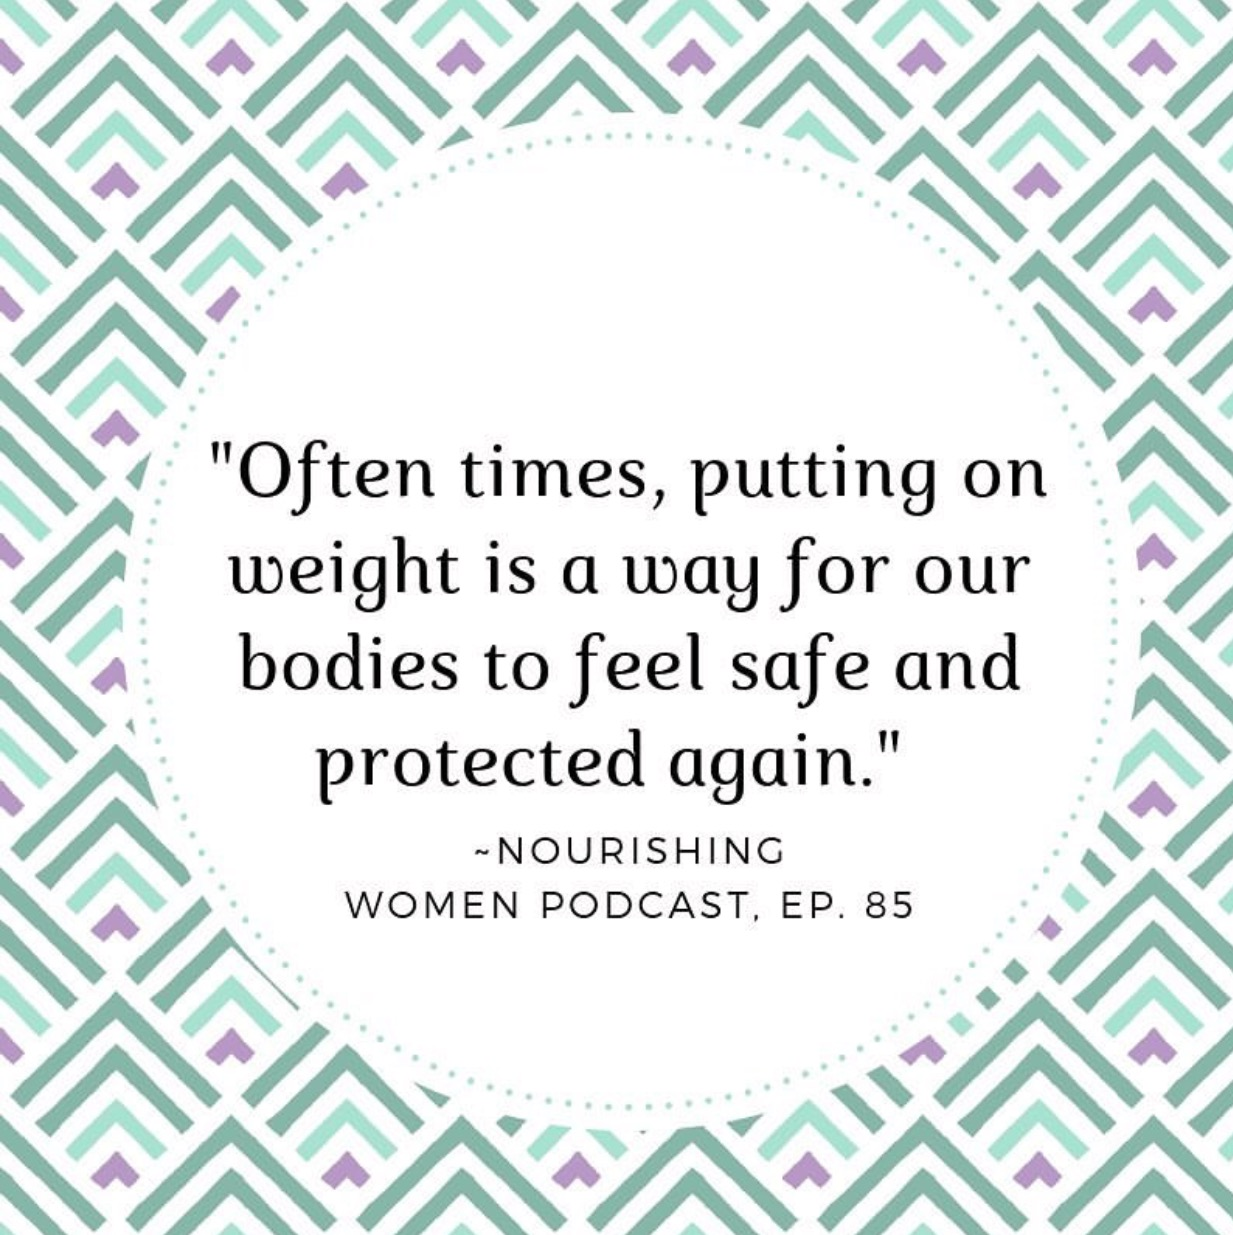 NWP Episode 85 Q&A on Intuitive Eating